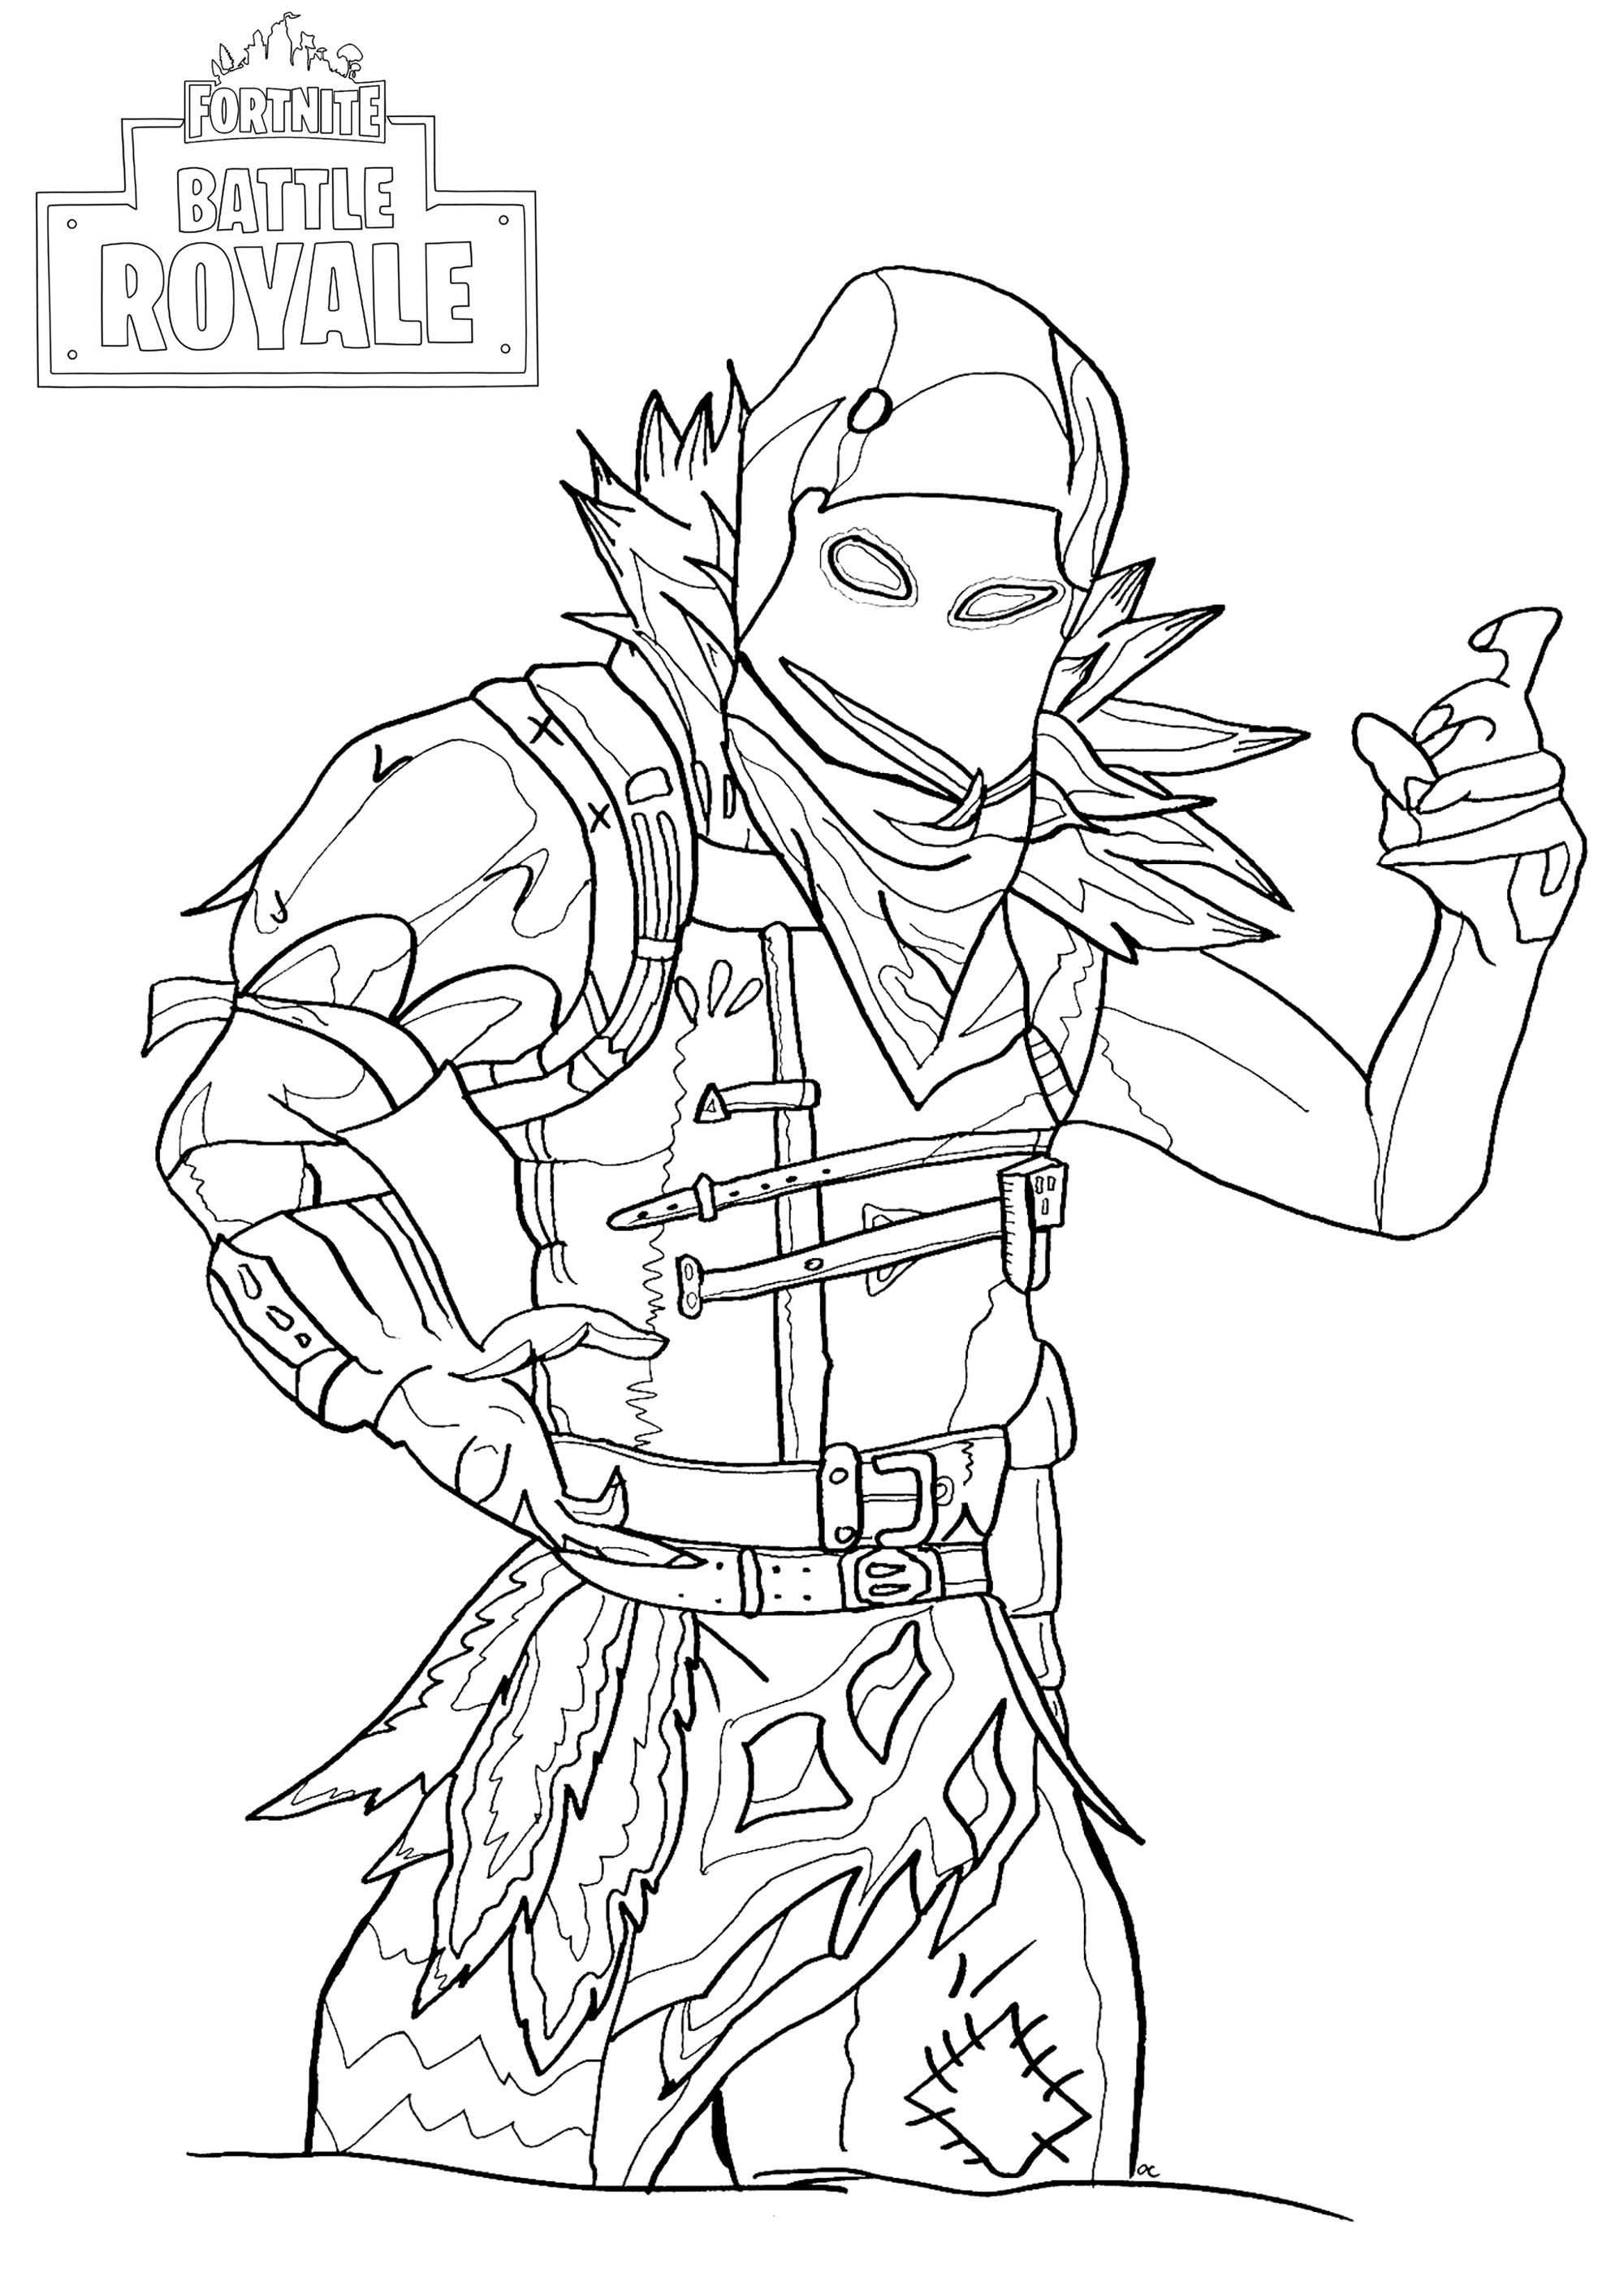 Top 10 Fortnite Coloring Pages Free With Images Coloring Pages